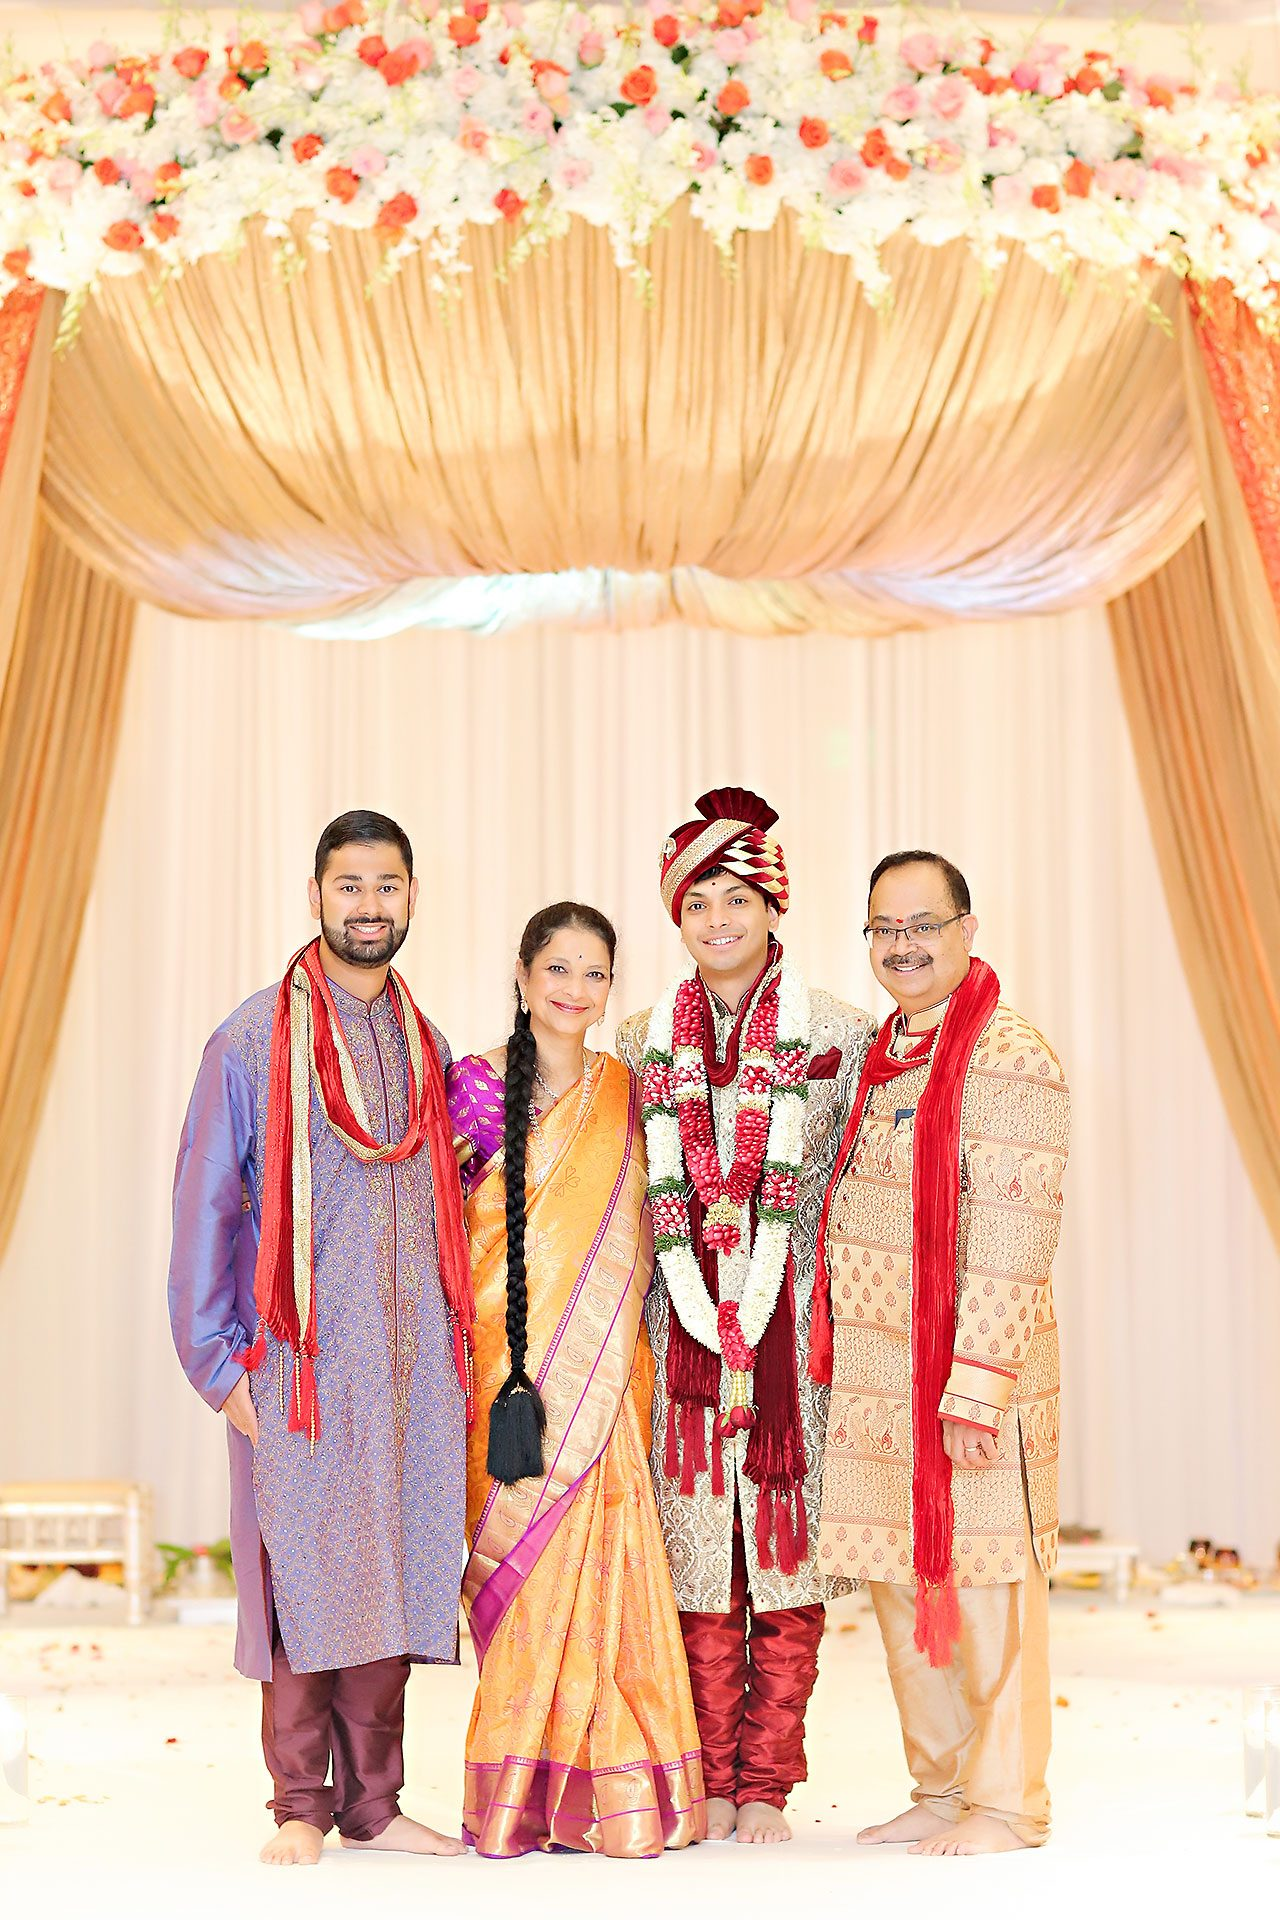 Joie Nikhil JW Marriott Indian Wedding 313